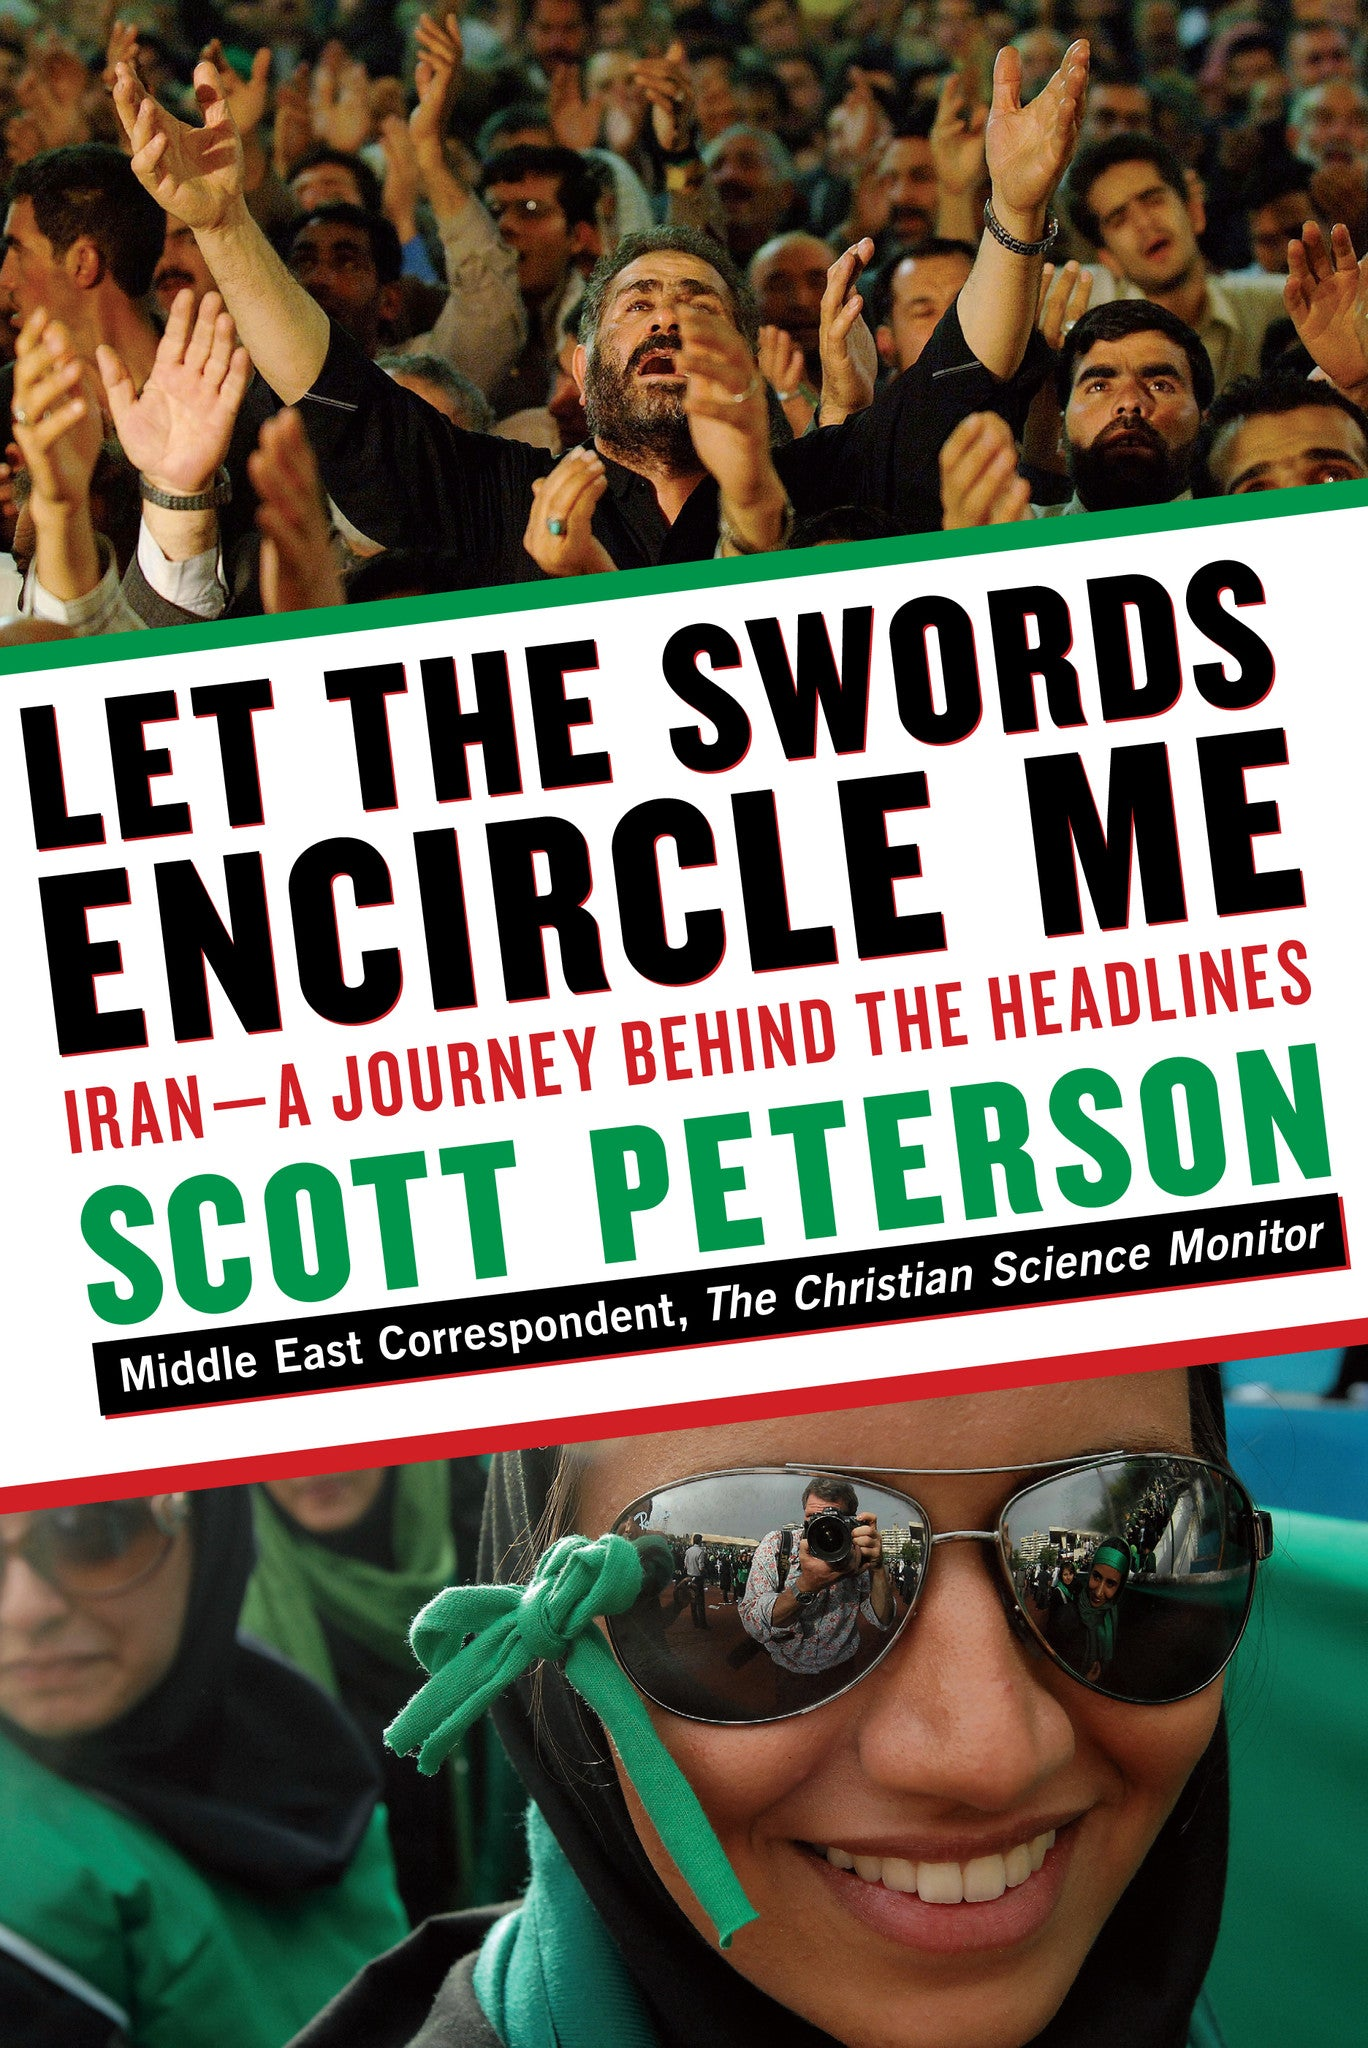 Let the Swords Encircle Me: Iran - A Journey Behind the Headlines